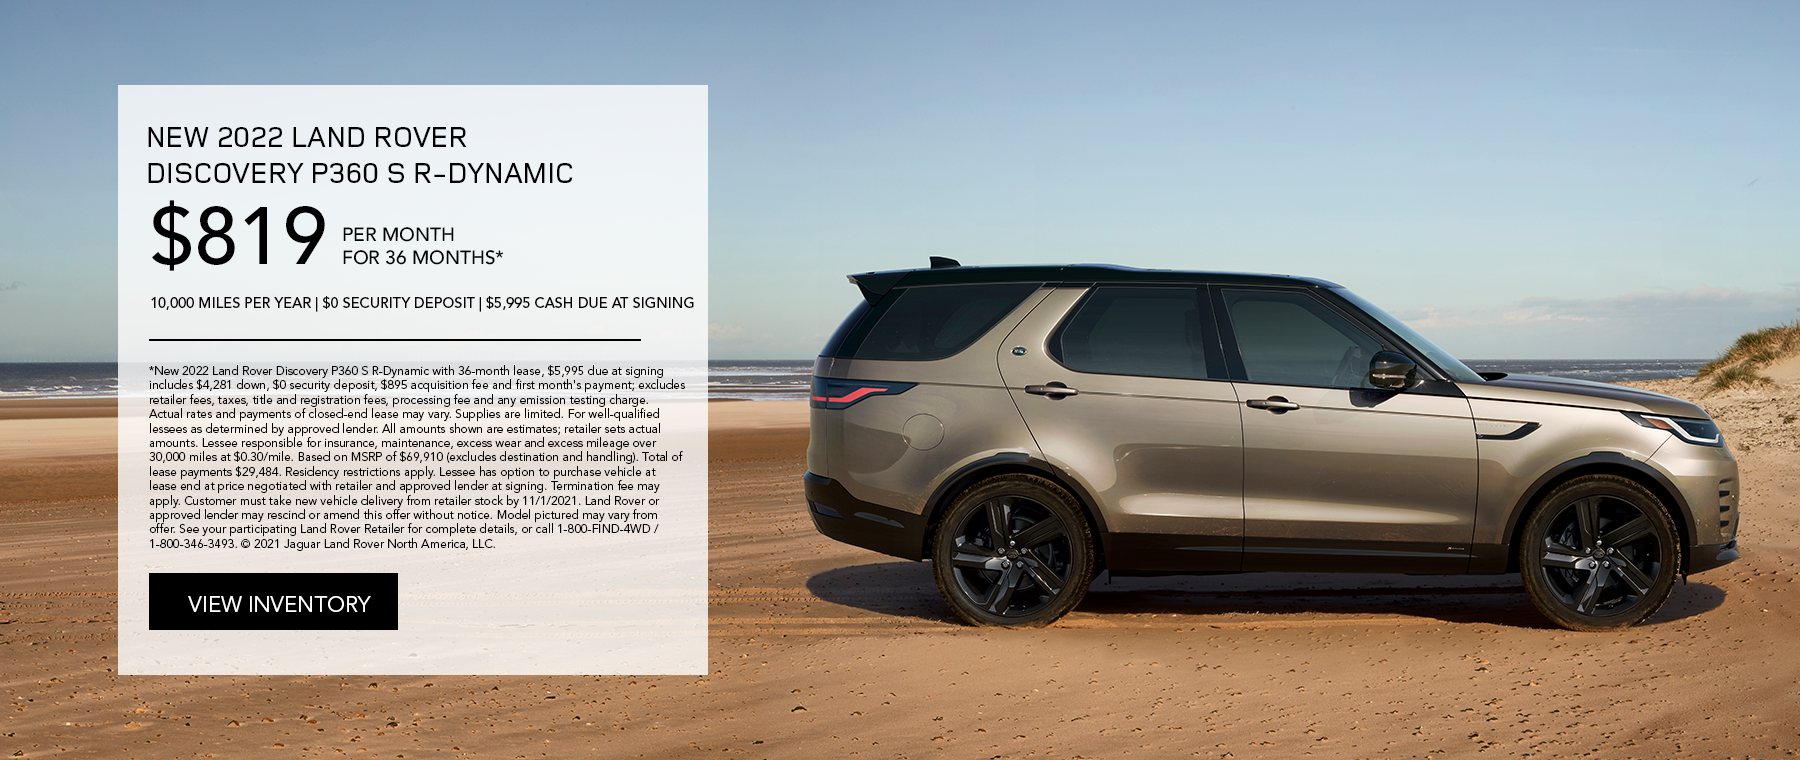 NEW 2022 LAND ROVER DISCOVERY P360 S R-DYNAMIC. $819 PER MONTH. 36 MONTH LEASE TERM. $5,995 CASH DUE AT SIGNING. $0 SECURITY DEPOSIT. 10,000 MILES PER YEAR. EXCLUDES RETAILER FEES, TAXES, TITLE AND REGISTRATION FEES, PROCESSING FEE AND ANY EMISSION TESTING CHARGE. OFFER ENDS 11/1/2021.